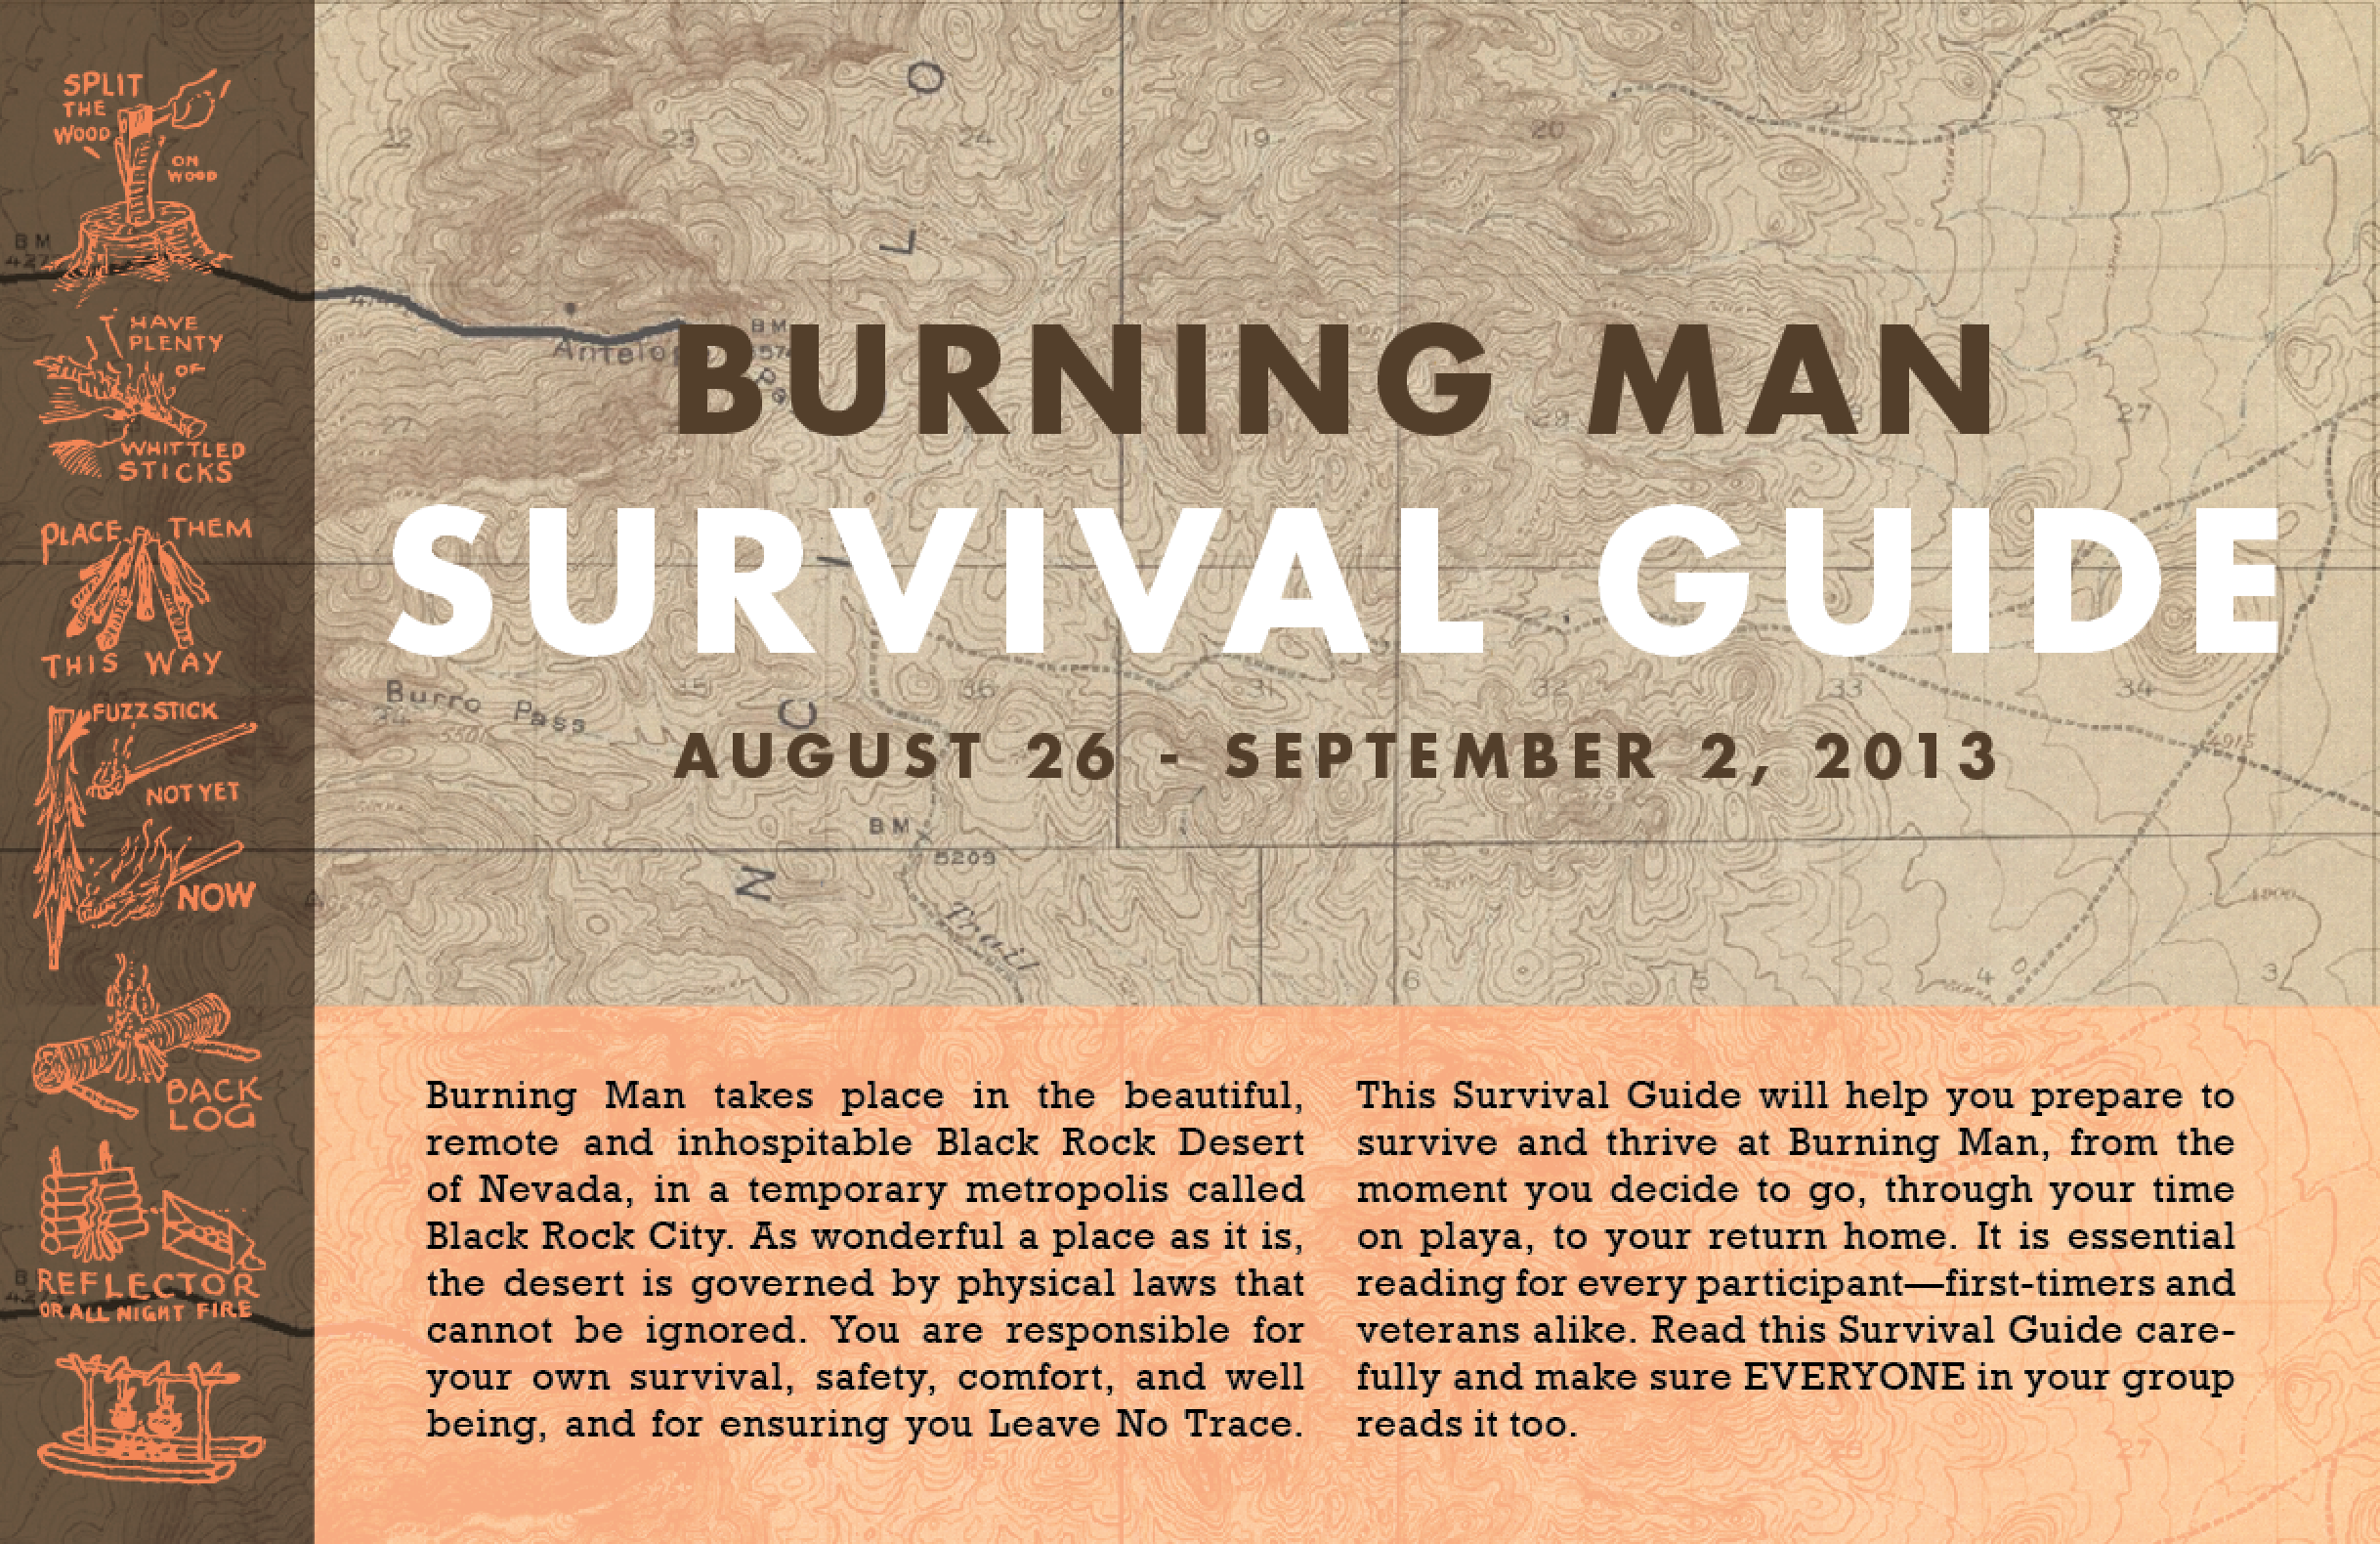 BUirning Man Survival Guide design 2014 cover